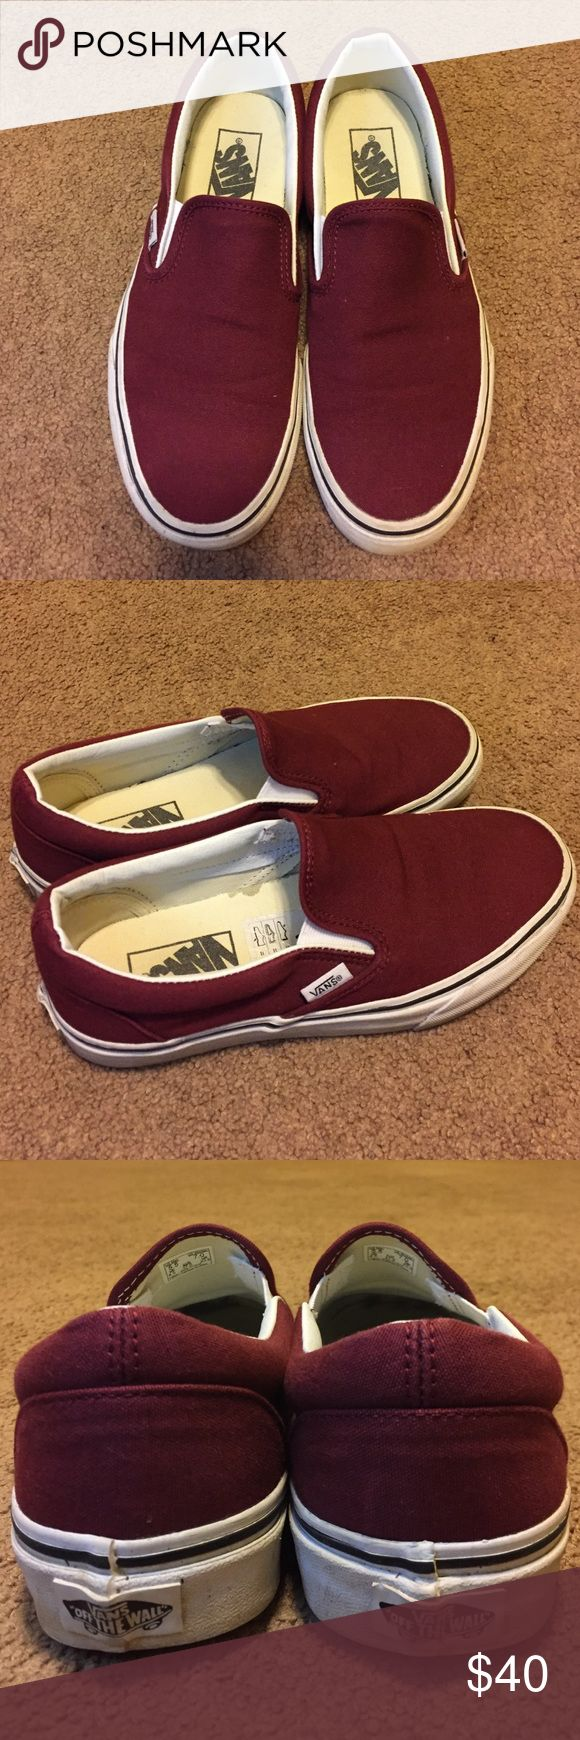 Maroon Slip on Vans Great condition  Ask any questions you may have in the comments  Add to a bundle to get to a discount  No trades Vans Shoes Sneakers